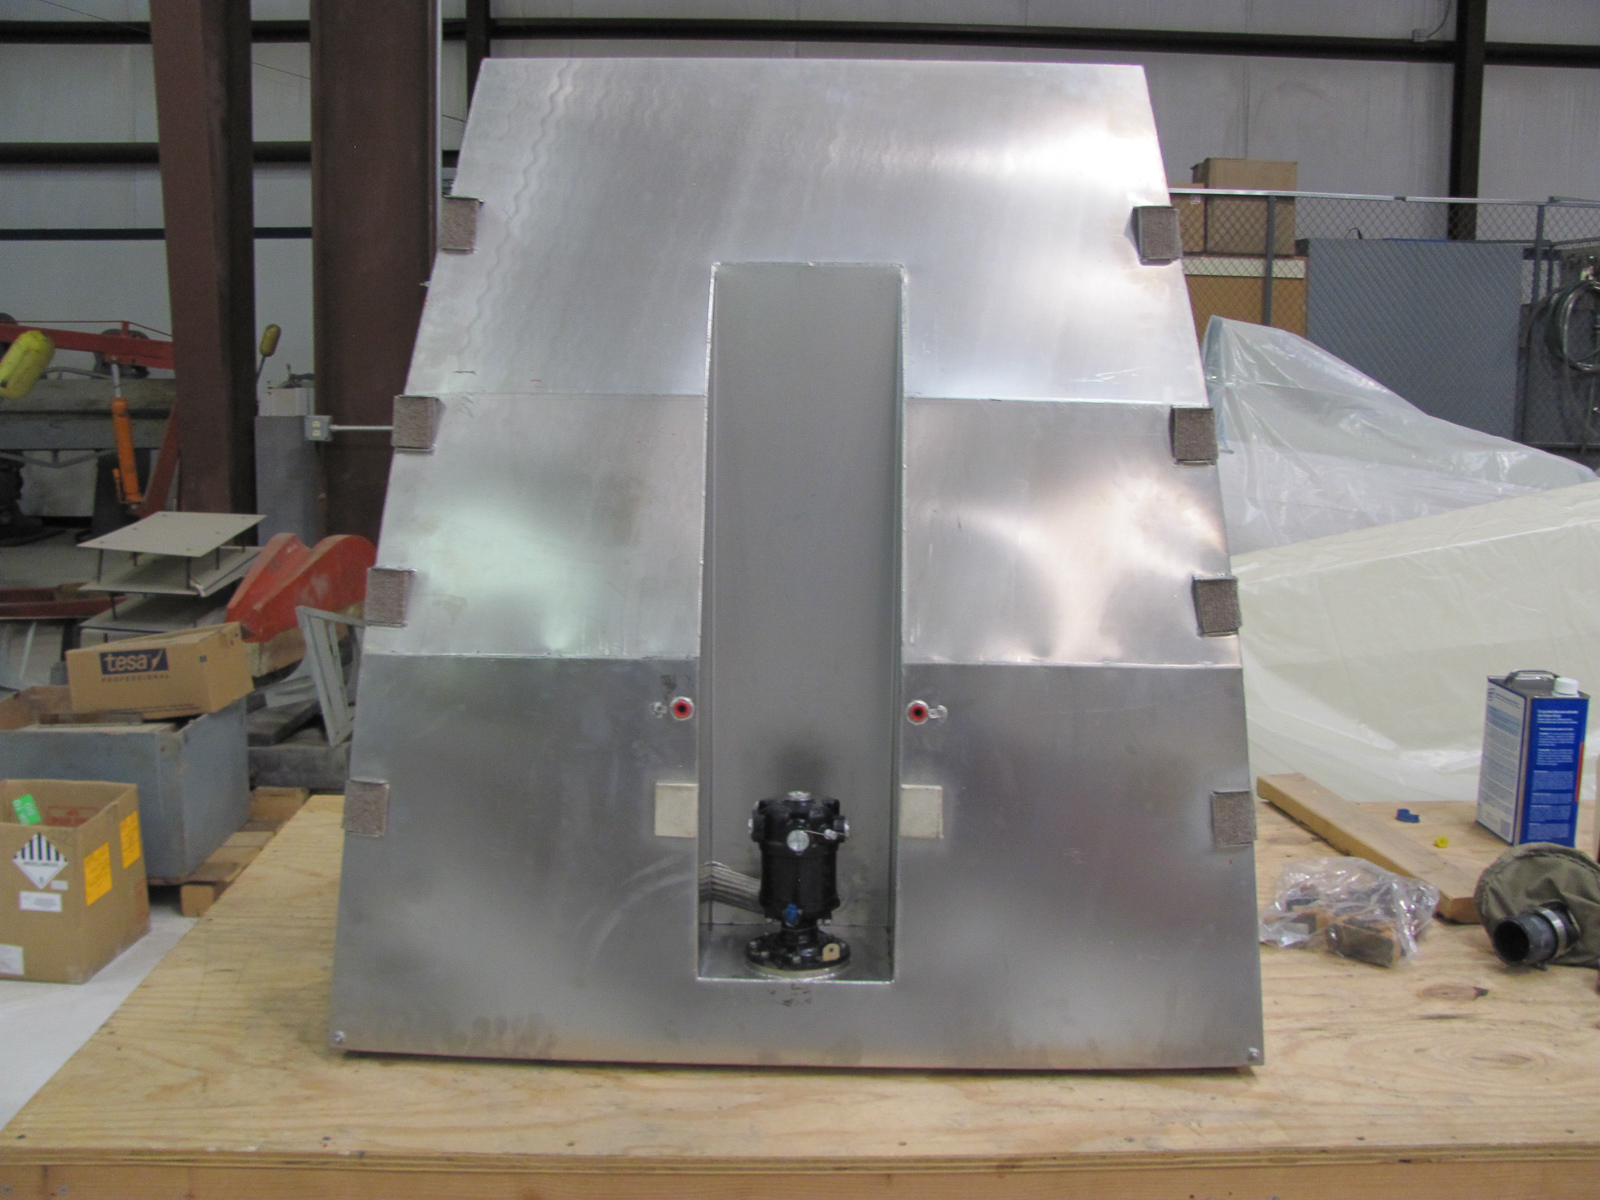 The freshly-fabricated fuel tank ready for installation. (photo via GossHawk Unlimited)